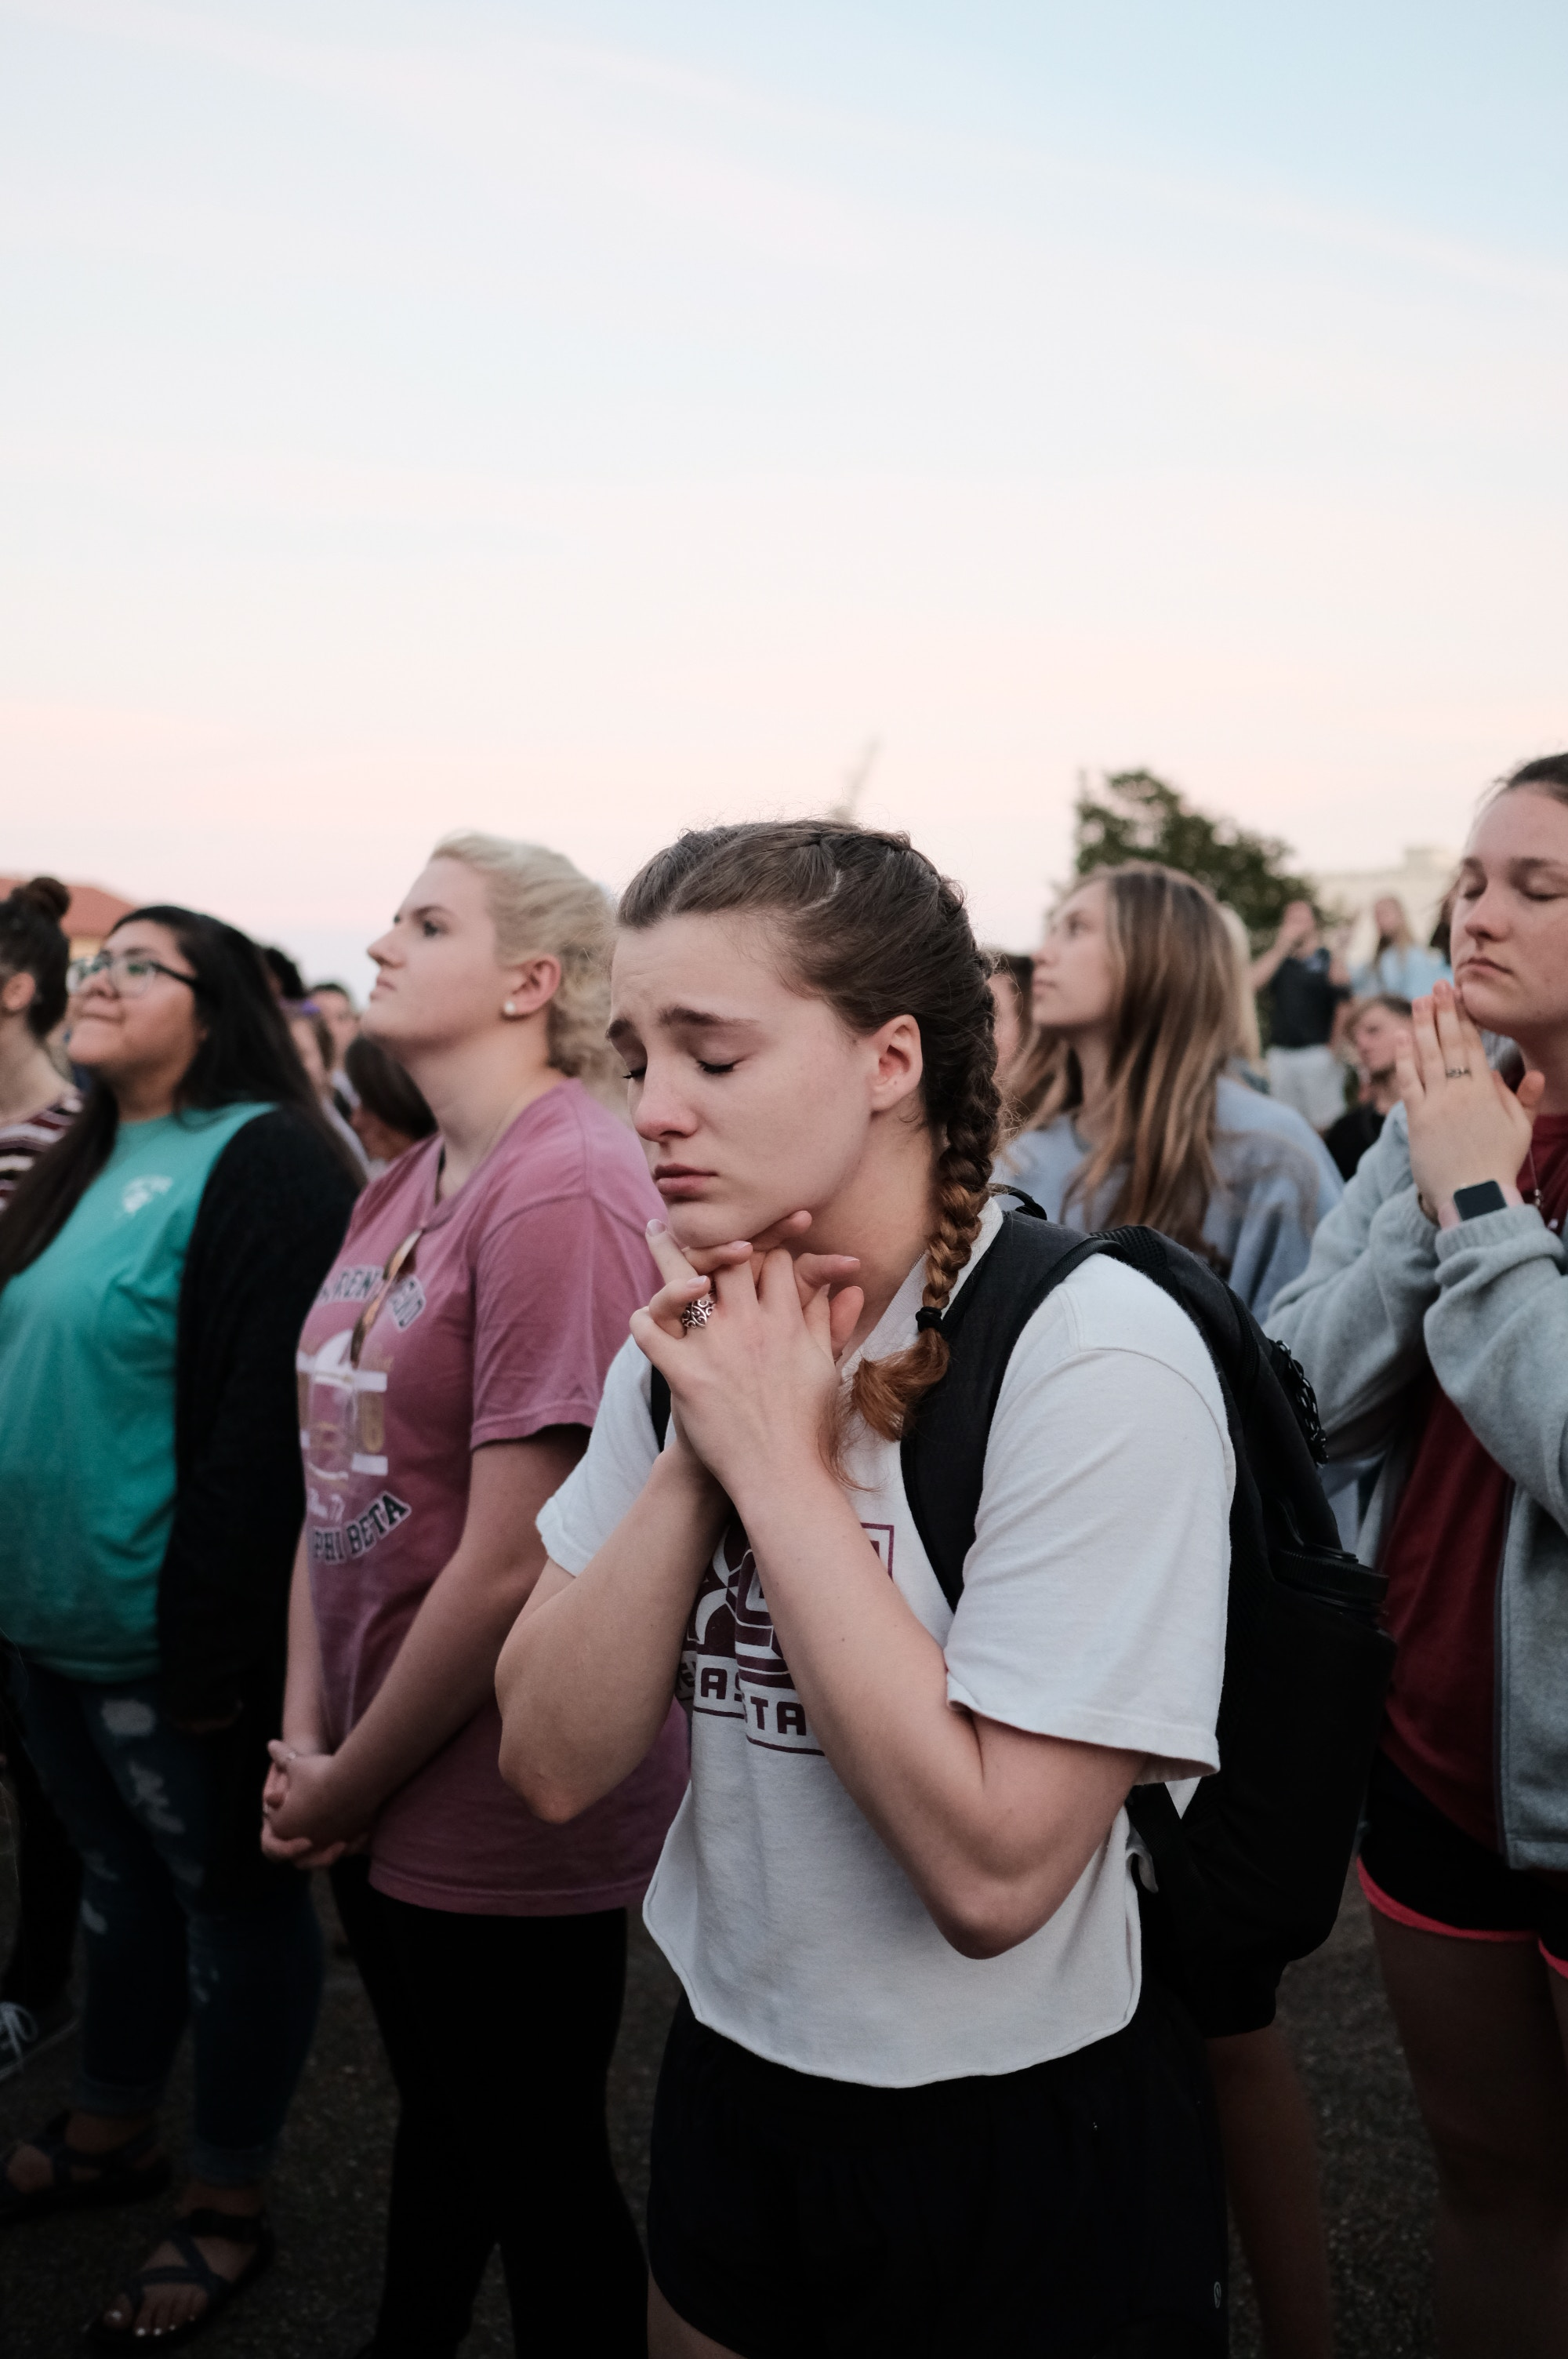 White girl clasps hands together, looking sad, at prayer meeting.